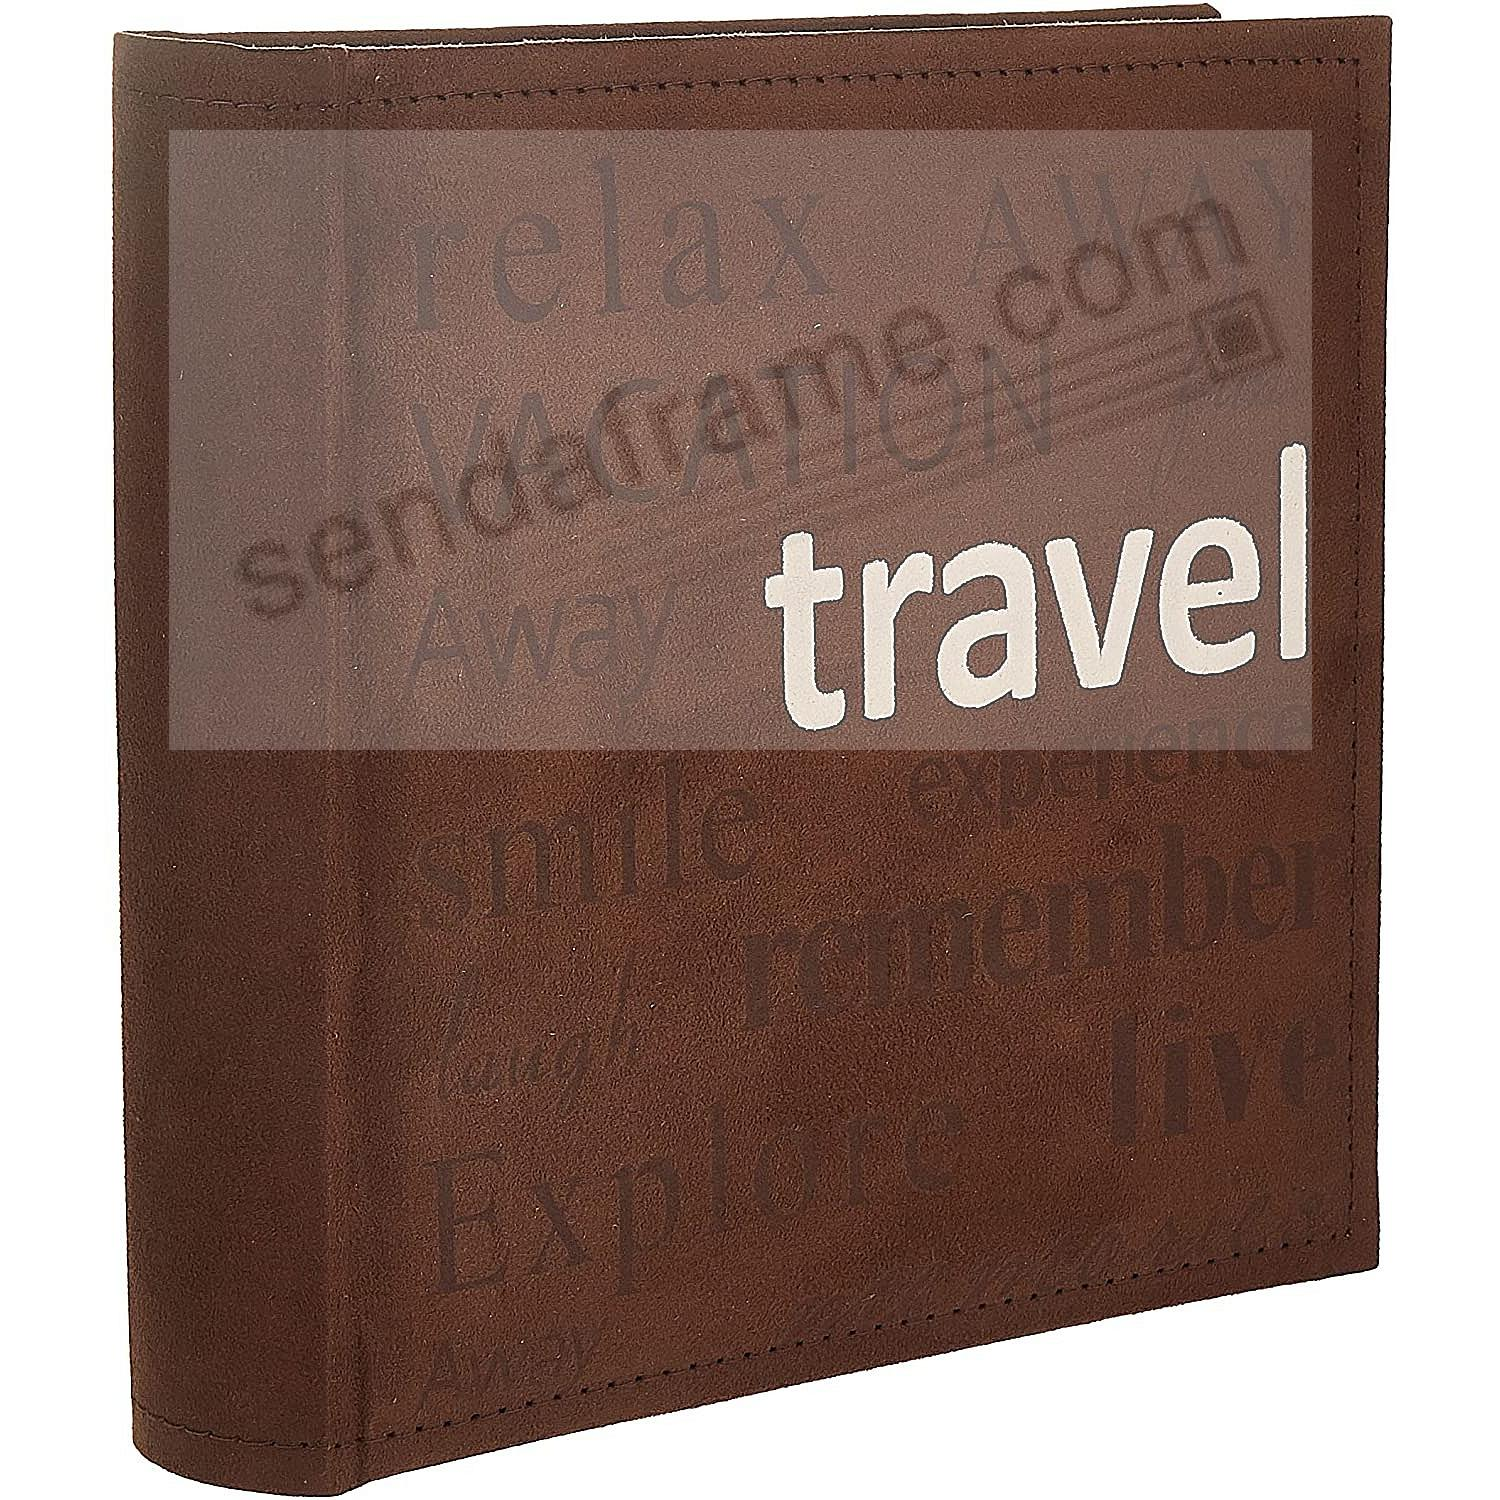 TRAVEL Words Design Album by Pioneer® holds 200 photos